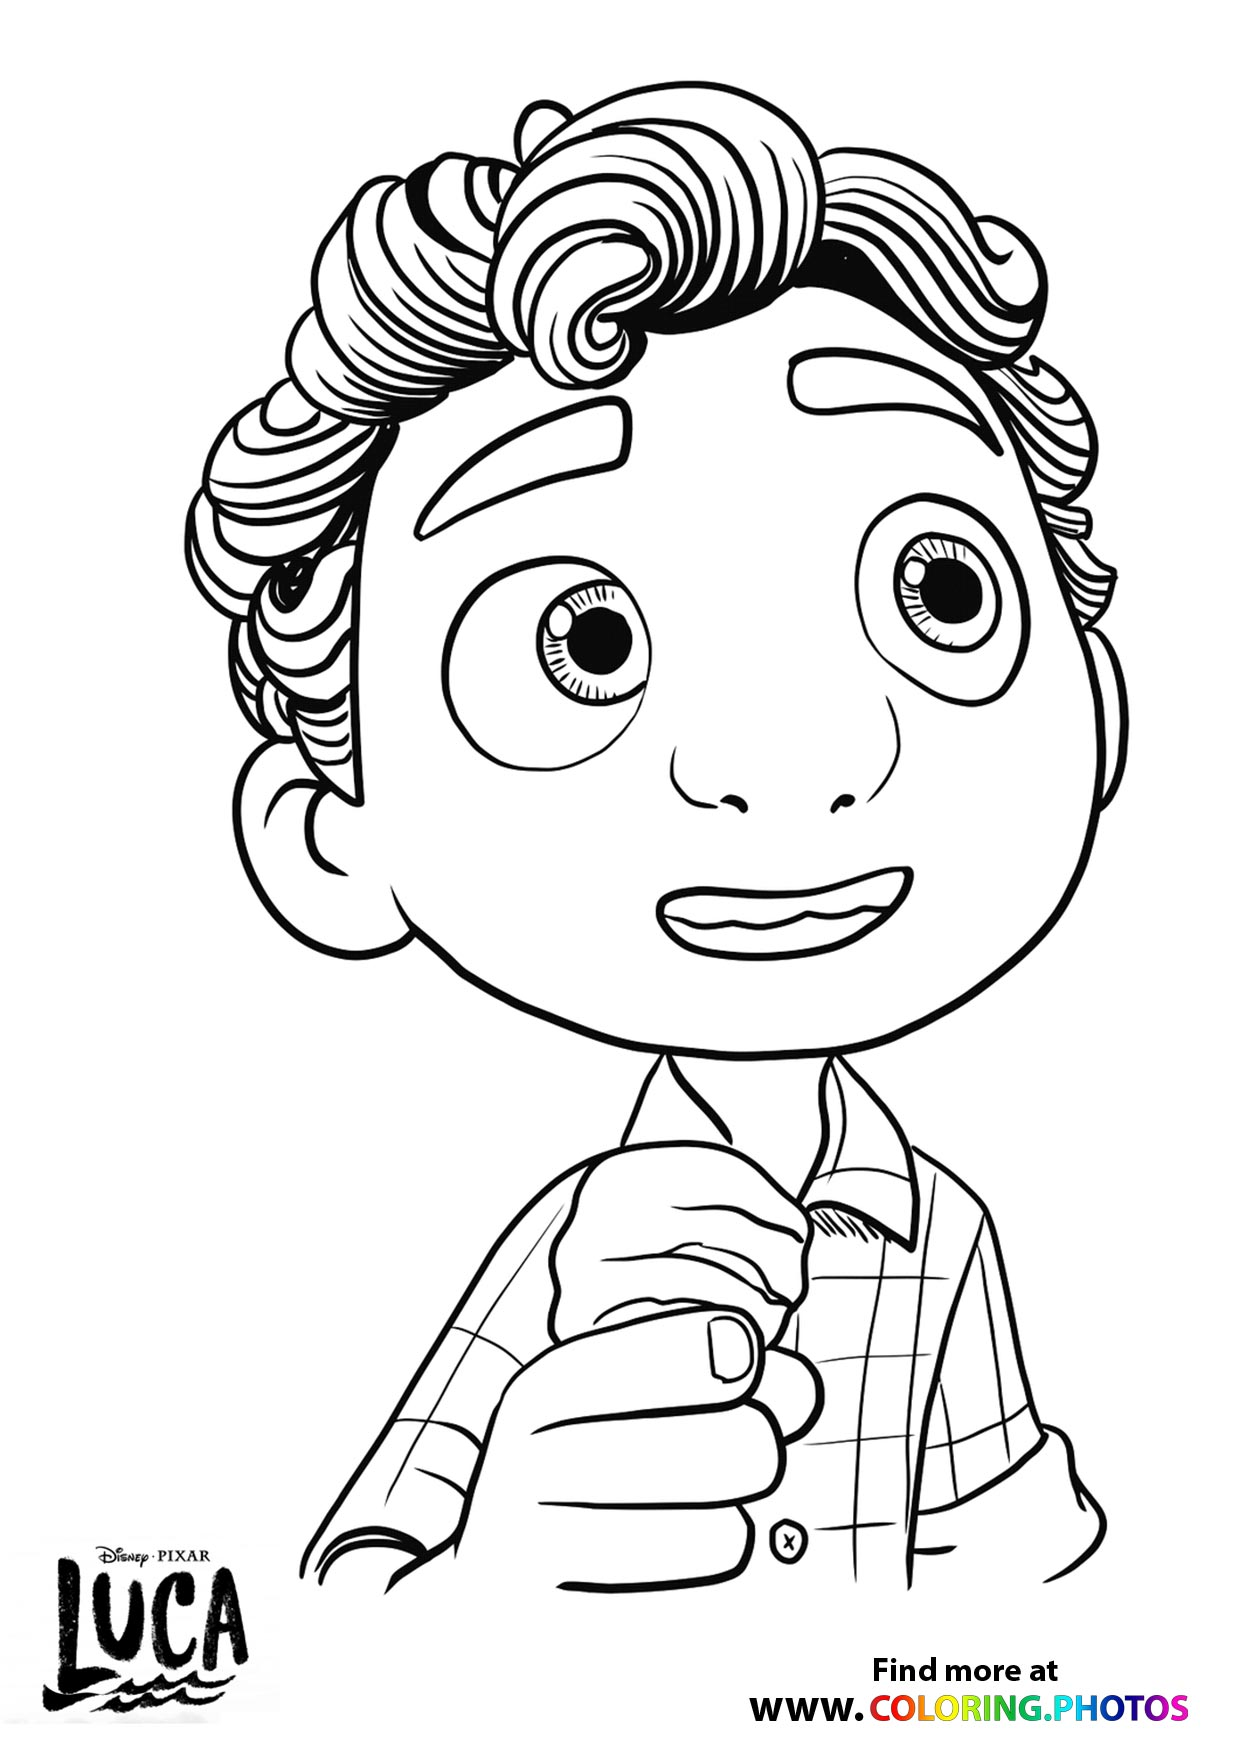 luca eating ice cream coloring for kids disney kite seasonal cycle circle crafts about coloring pages Disney Coloring Page Com